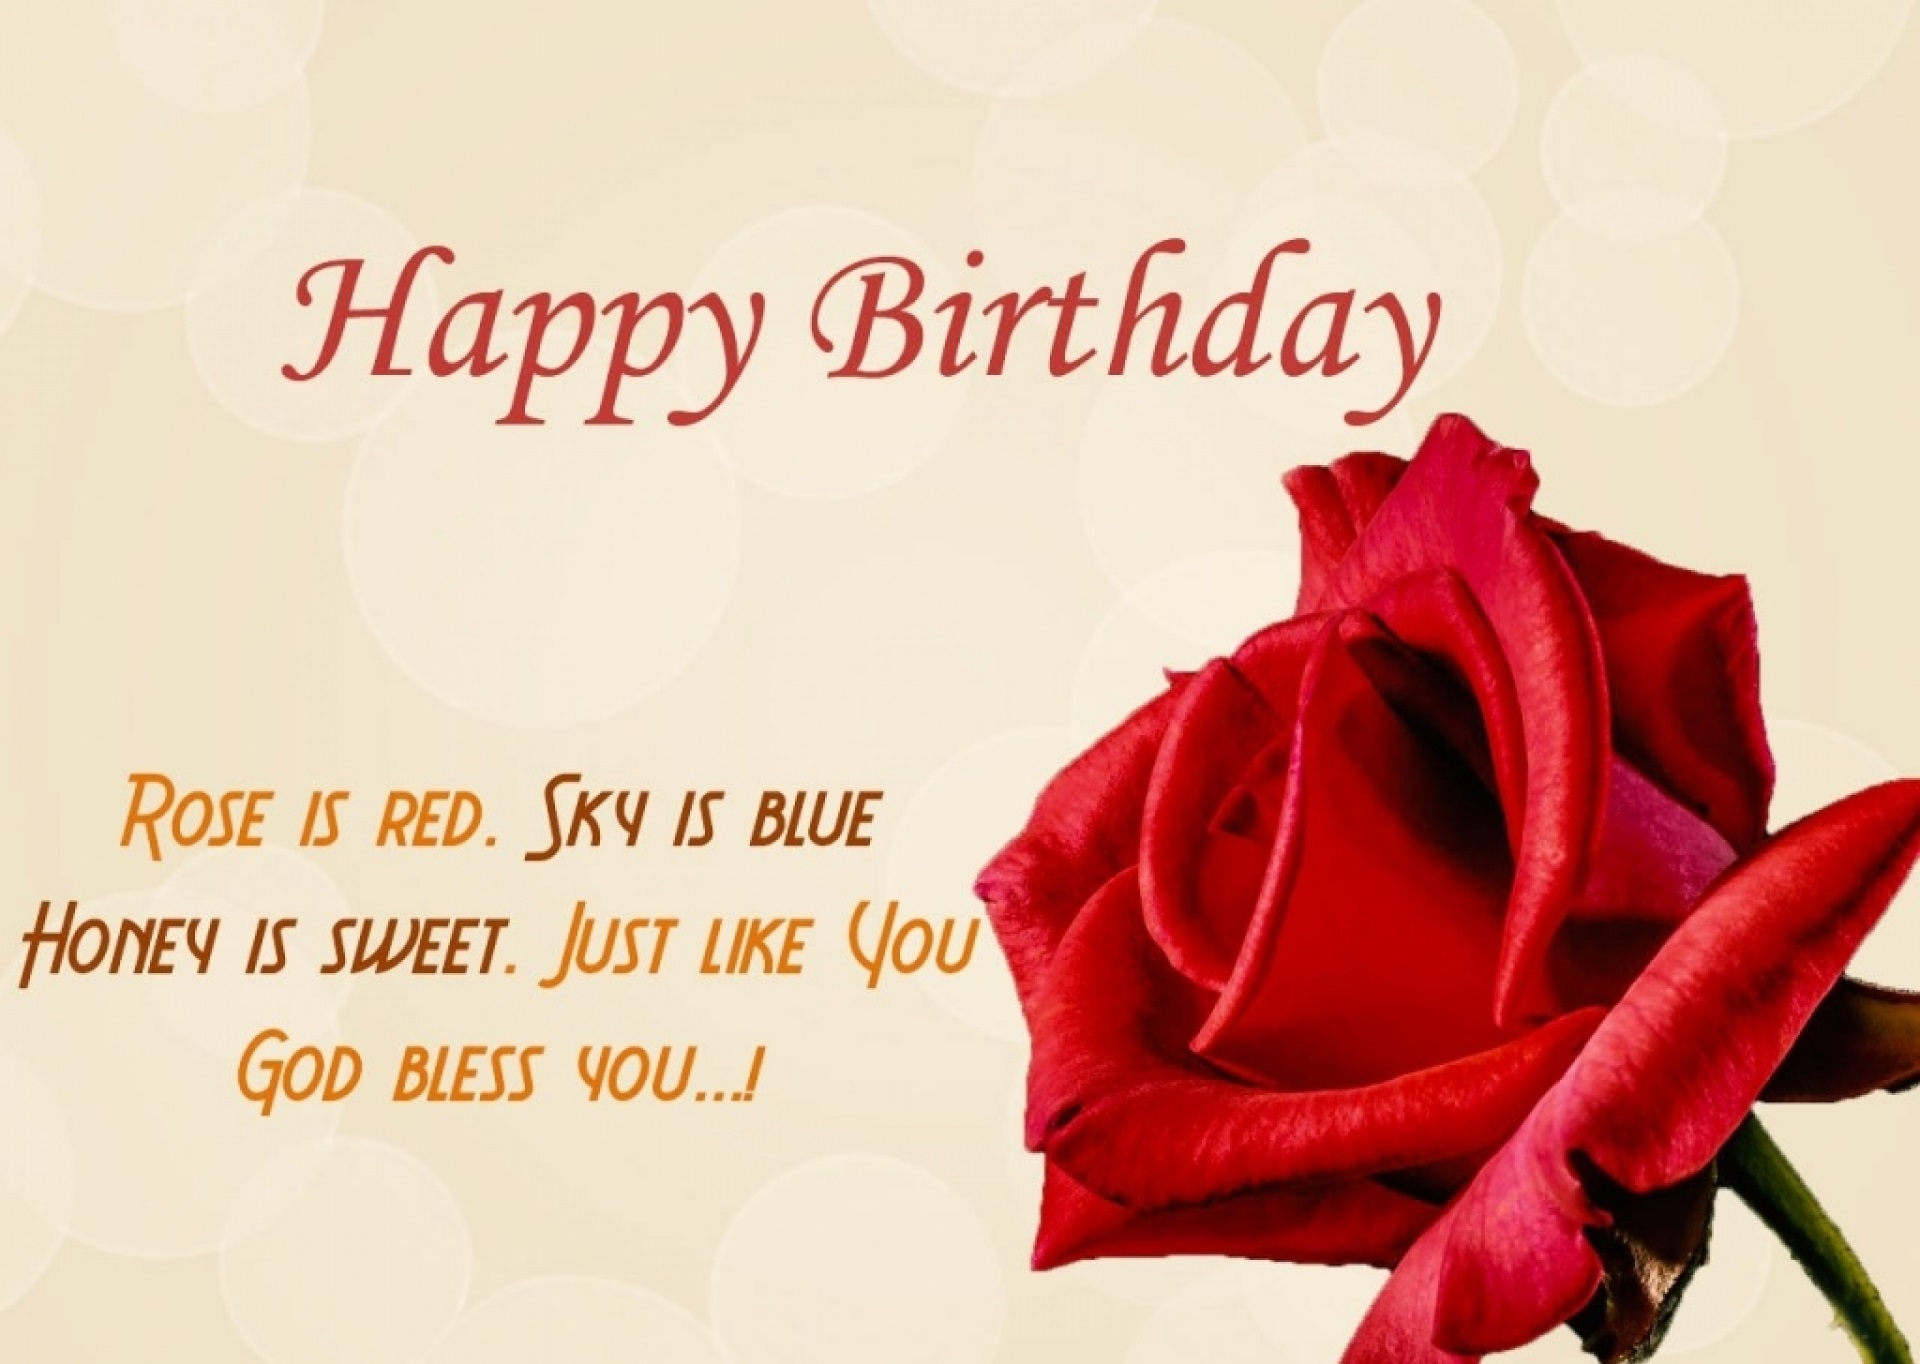 birthday wishes for husband images ; birthday-wishes-to-husband-images-5675